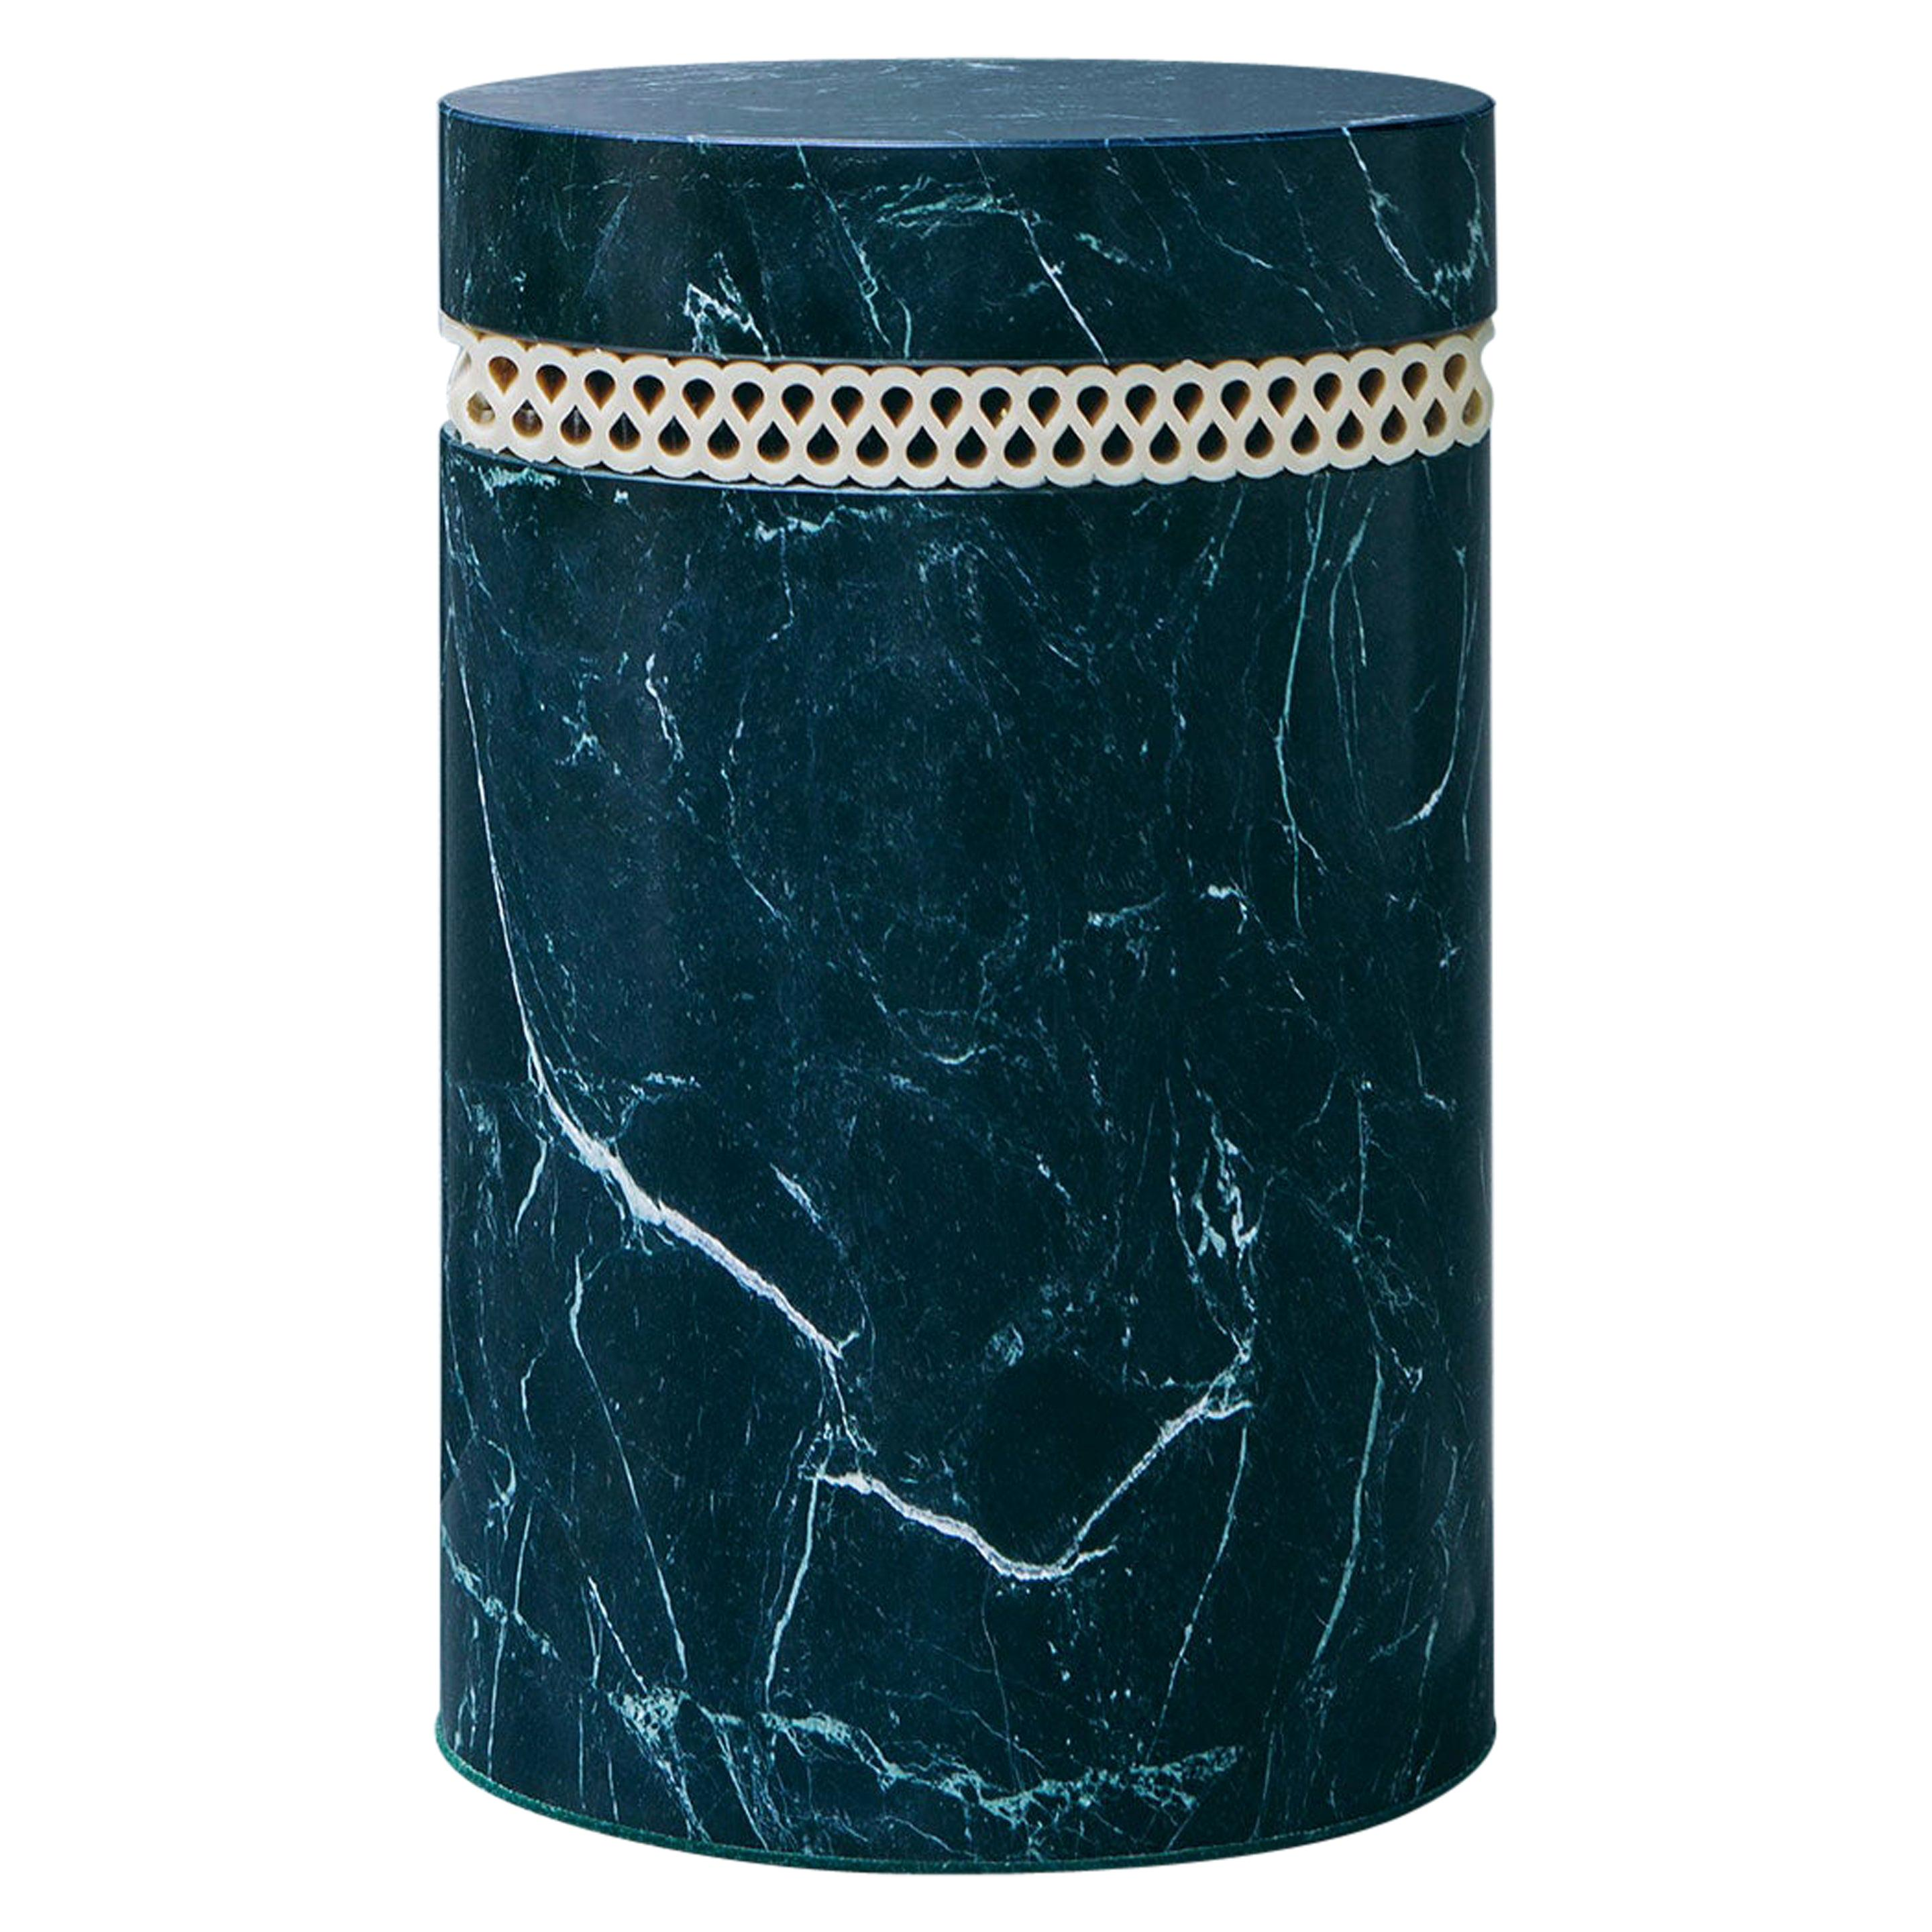 contemporary marble stool or side table, brut 01.1 c by barh.design